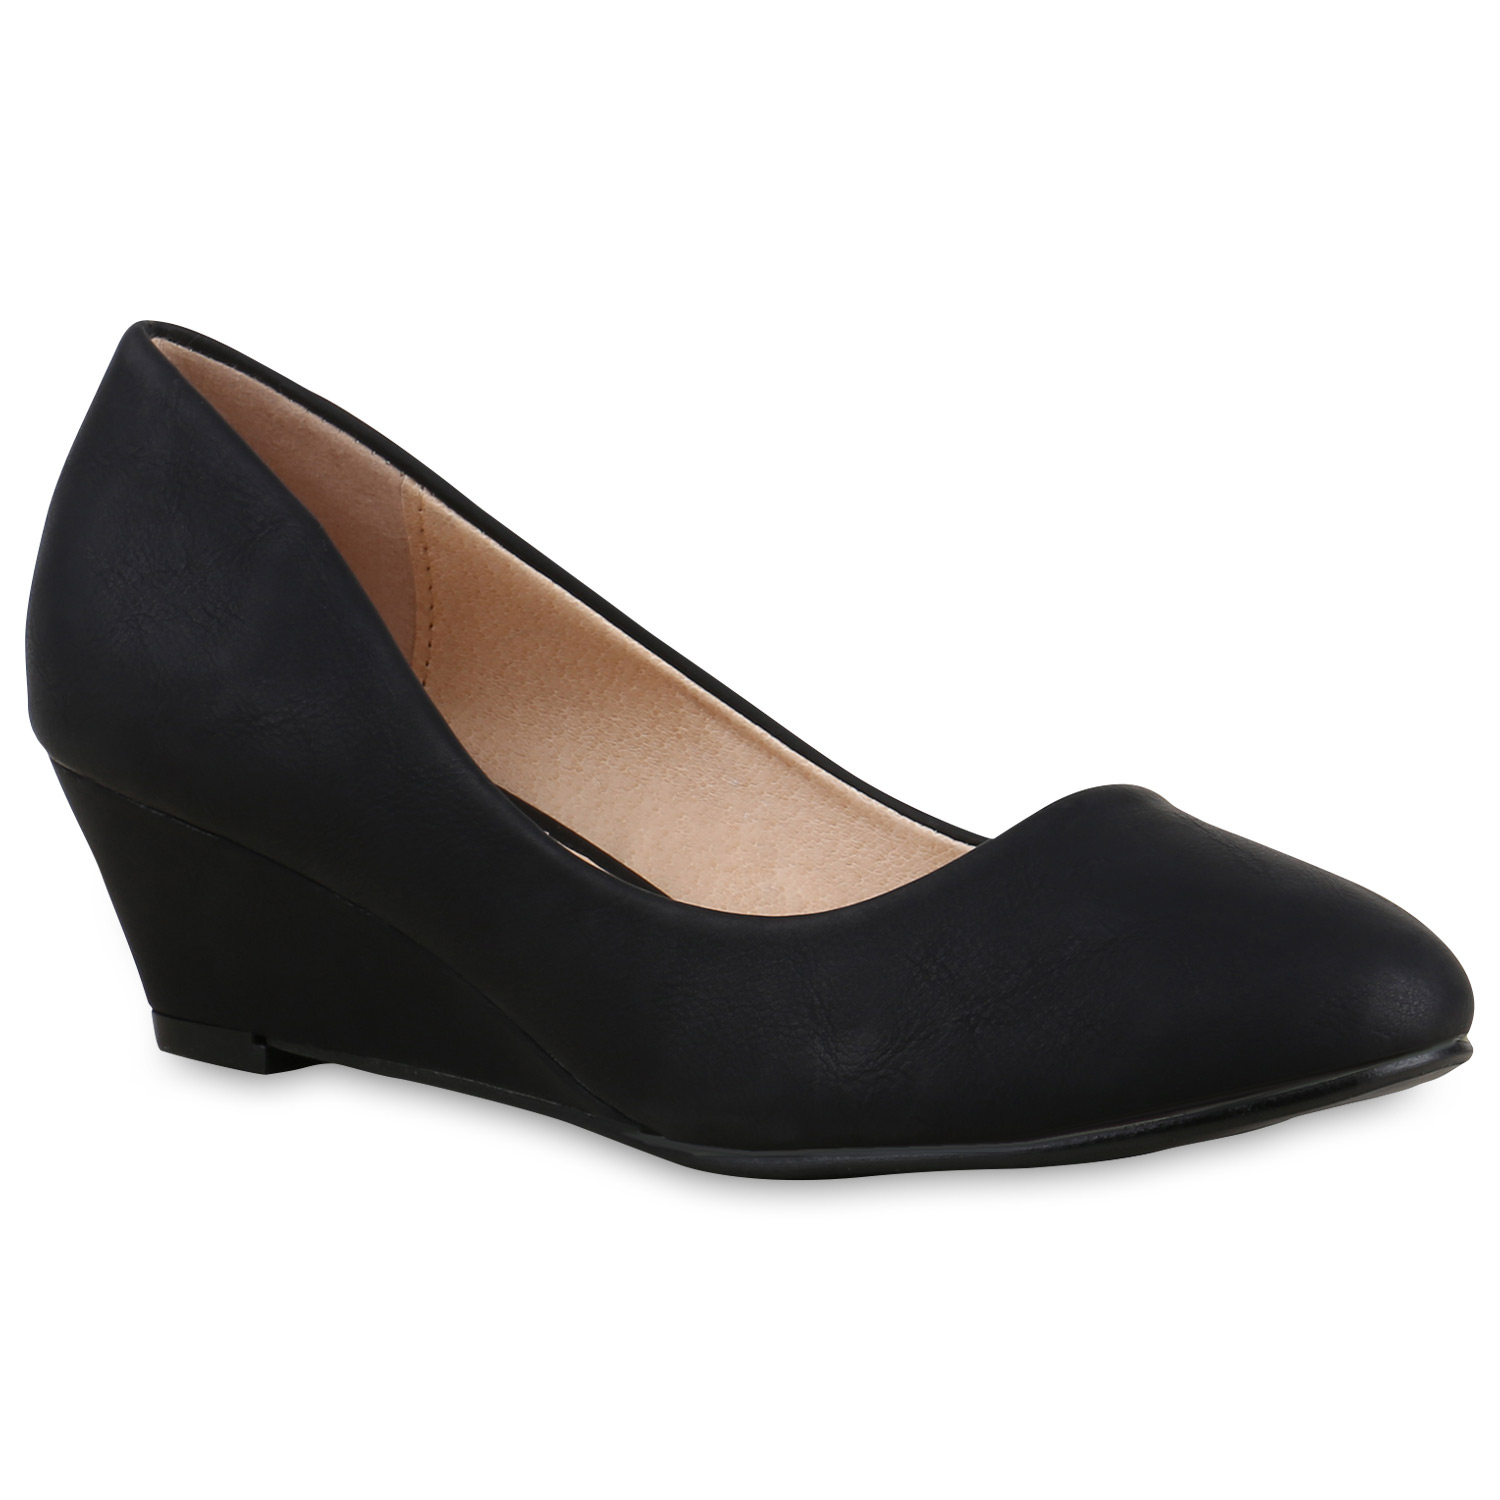 Find great deals on eBay for damen pumps. Shop with confidence.